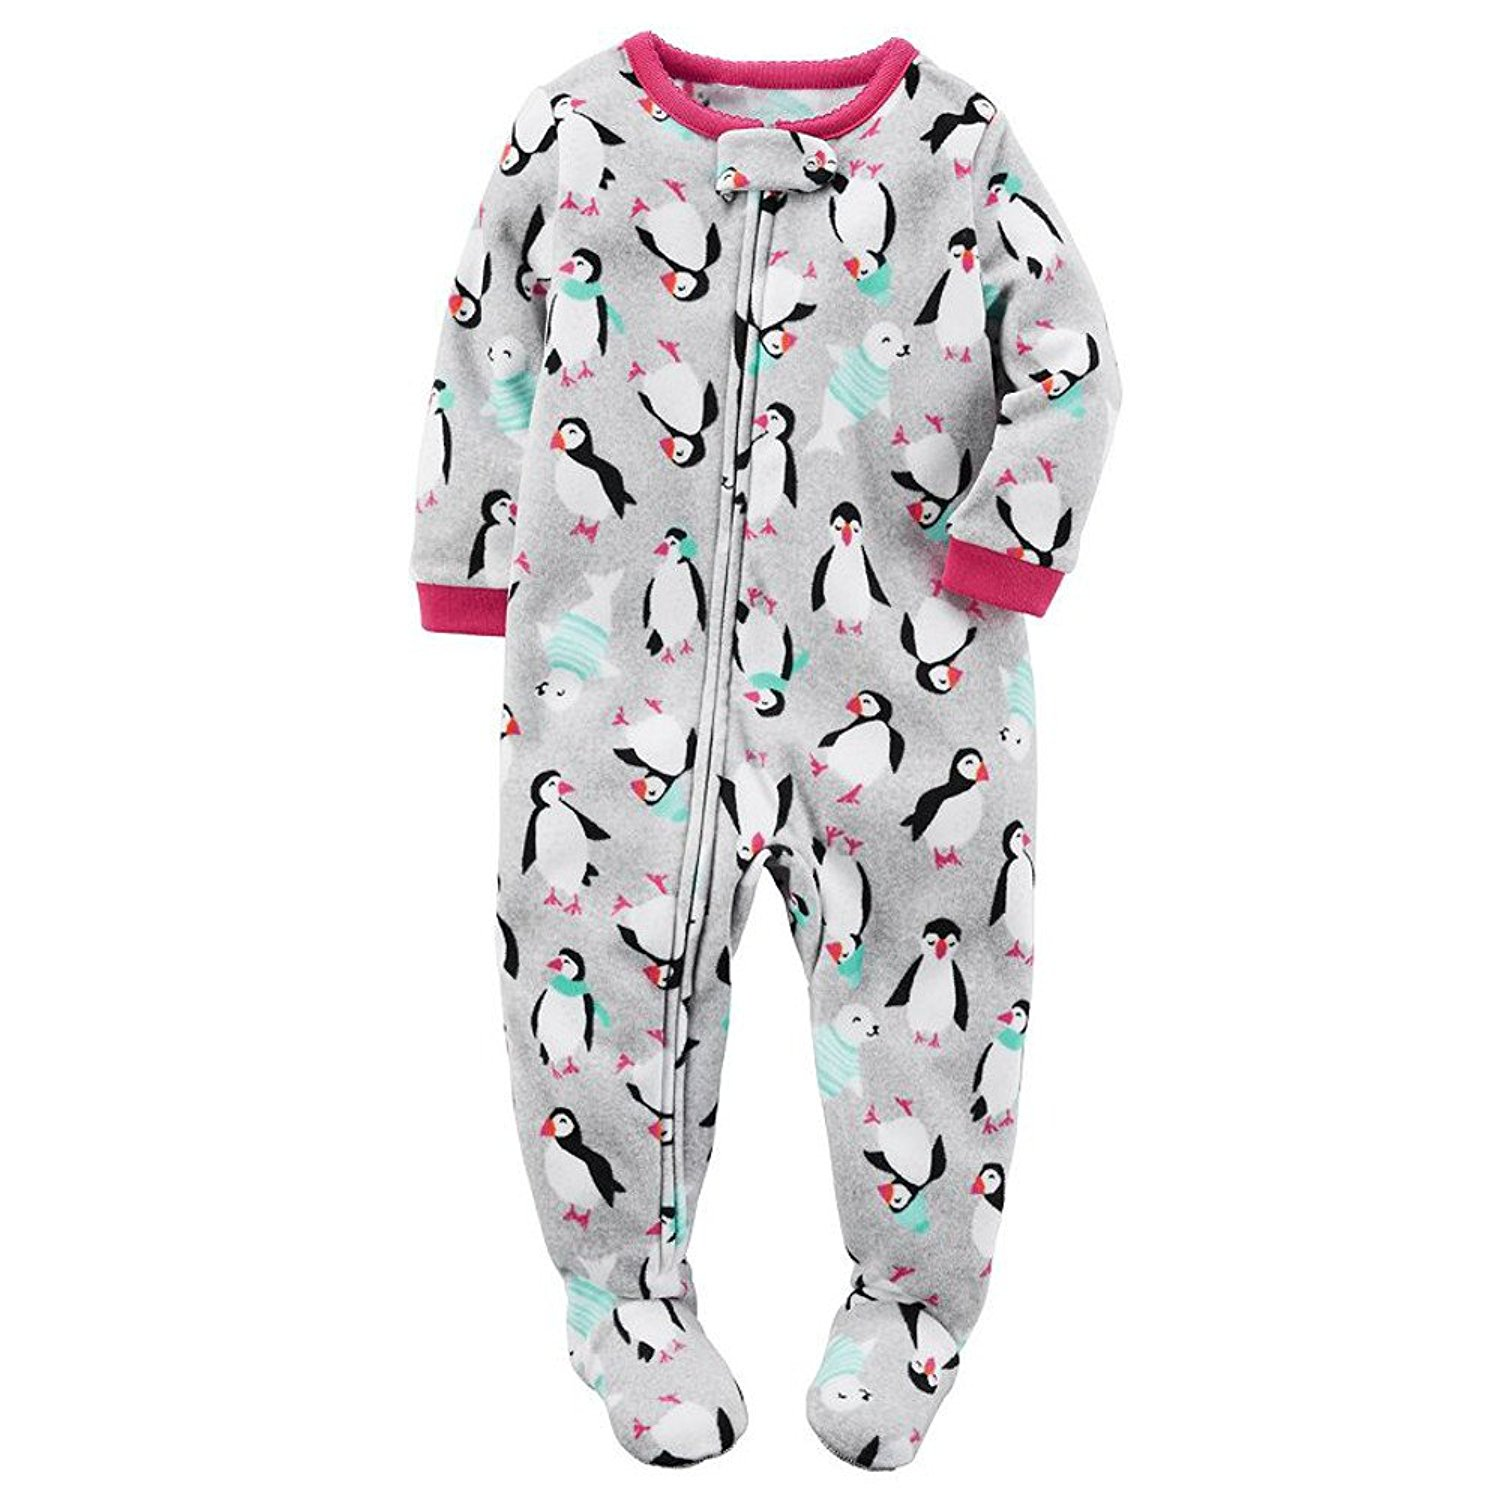 Leveret is a U.S. based company known for their sleepwear and matching pajamas for the entire family. Leveret also has a carefully curated selection of basics for mom and child. Christmas Pajamas, tee shirts, hoodies, pants, yoga pants, fleece robes, baby bodysuits, matching girl and doll pajamas, leotards, swimwear and much more.